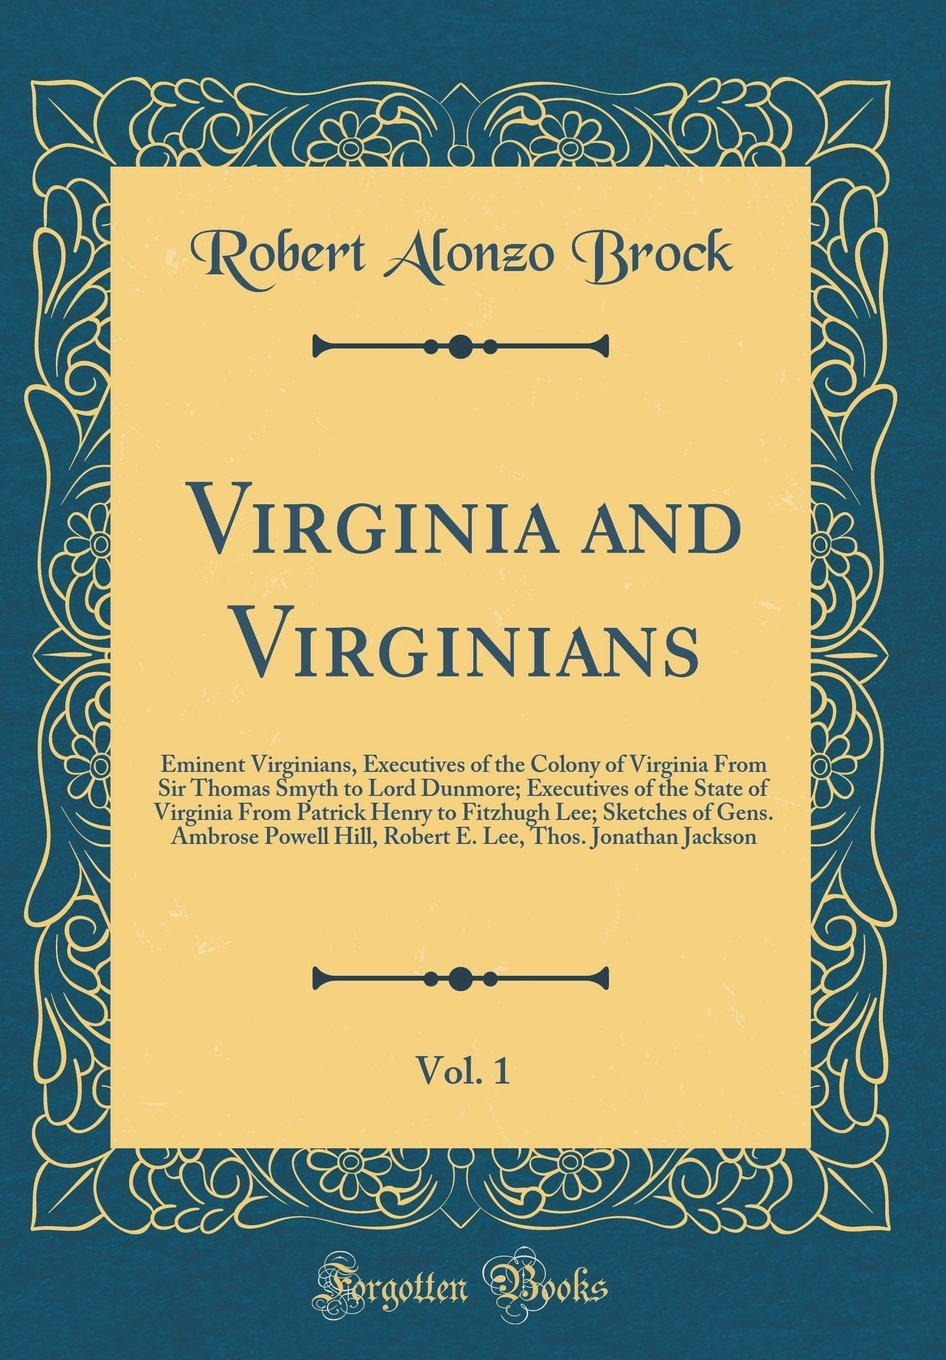 Read Online Virginia and Virginians, Vol. 1: Eminent Virginians, Executives of the Colony of Virginia from Sir Thomas Smyth to Lord Dunmore; Executives of the ... of Gens. Ambrose Powell Hill, Robert E. Lee, pdf